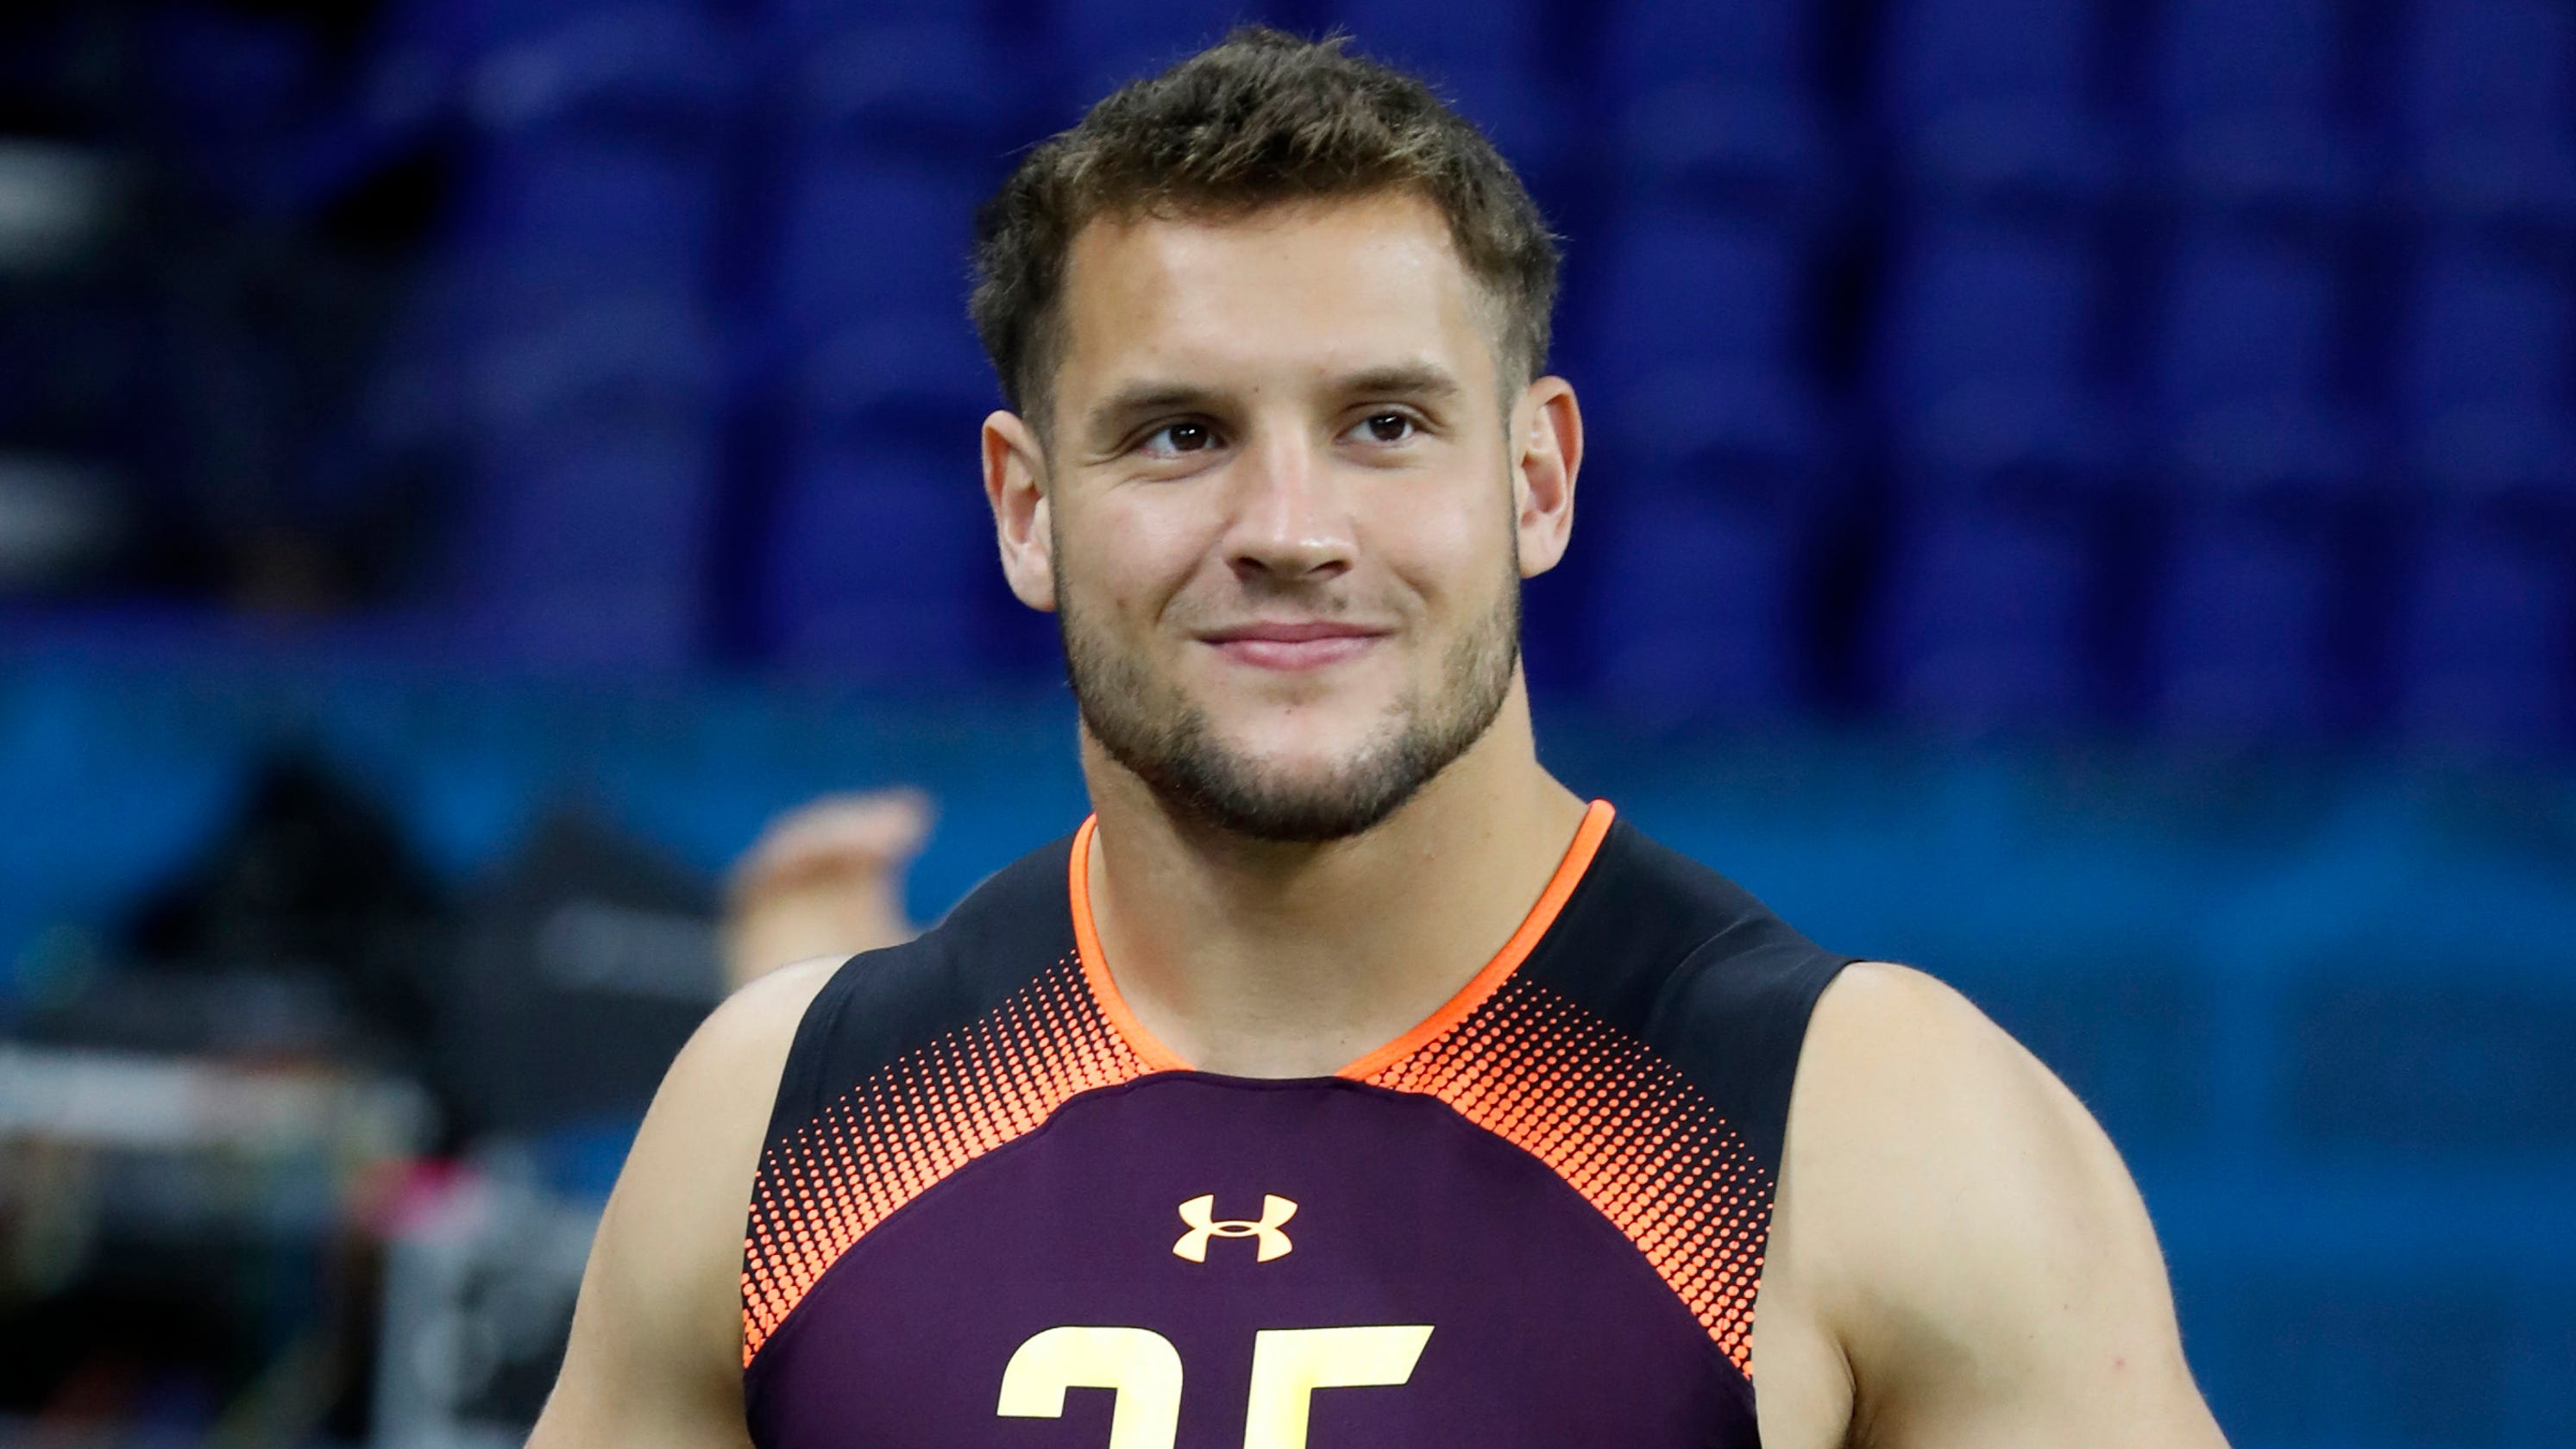 Opinion: Nick Bosa's lack of conviction worse than his conservative views